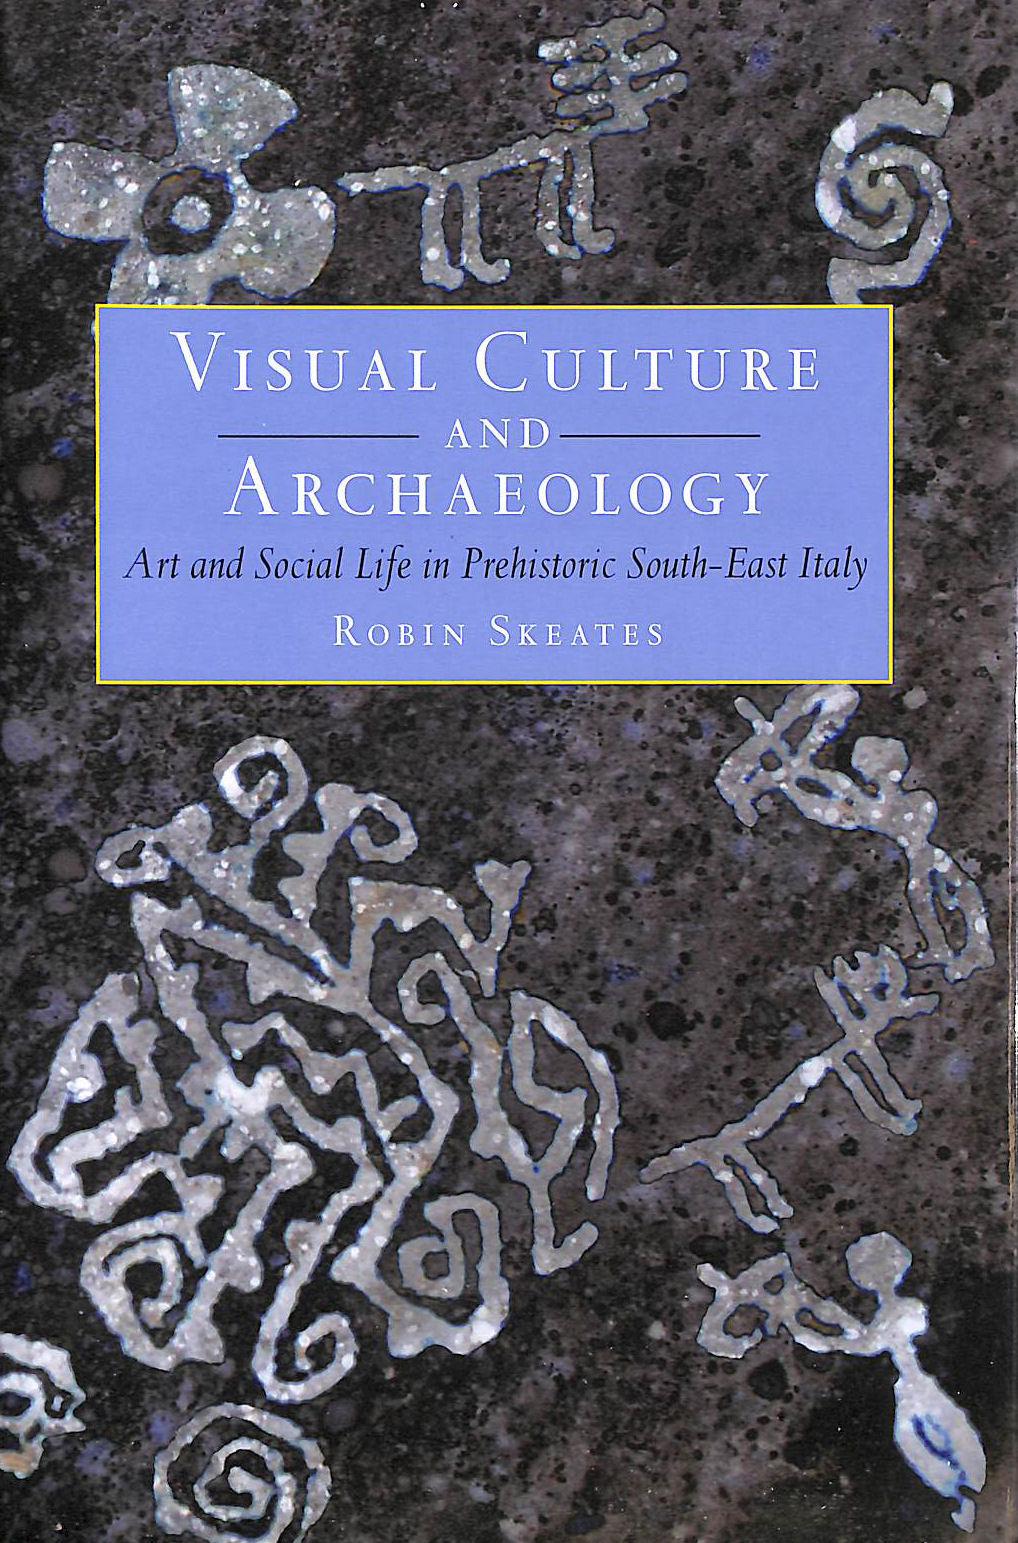 Image for Visual Culture and Archaeology: Art and Social Life in Prehistoric South-East Italy